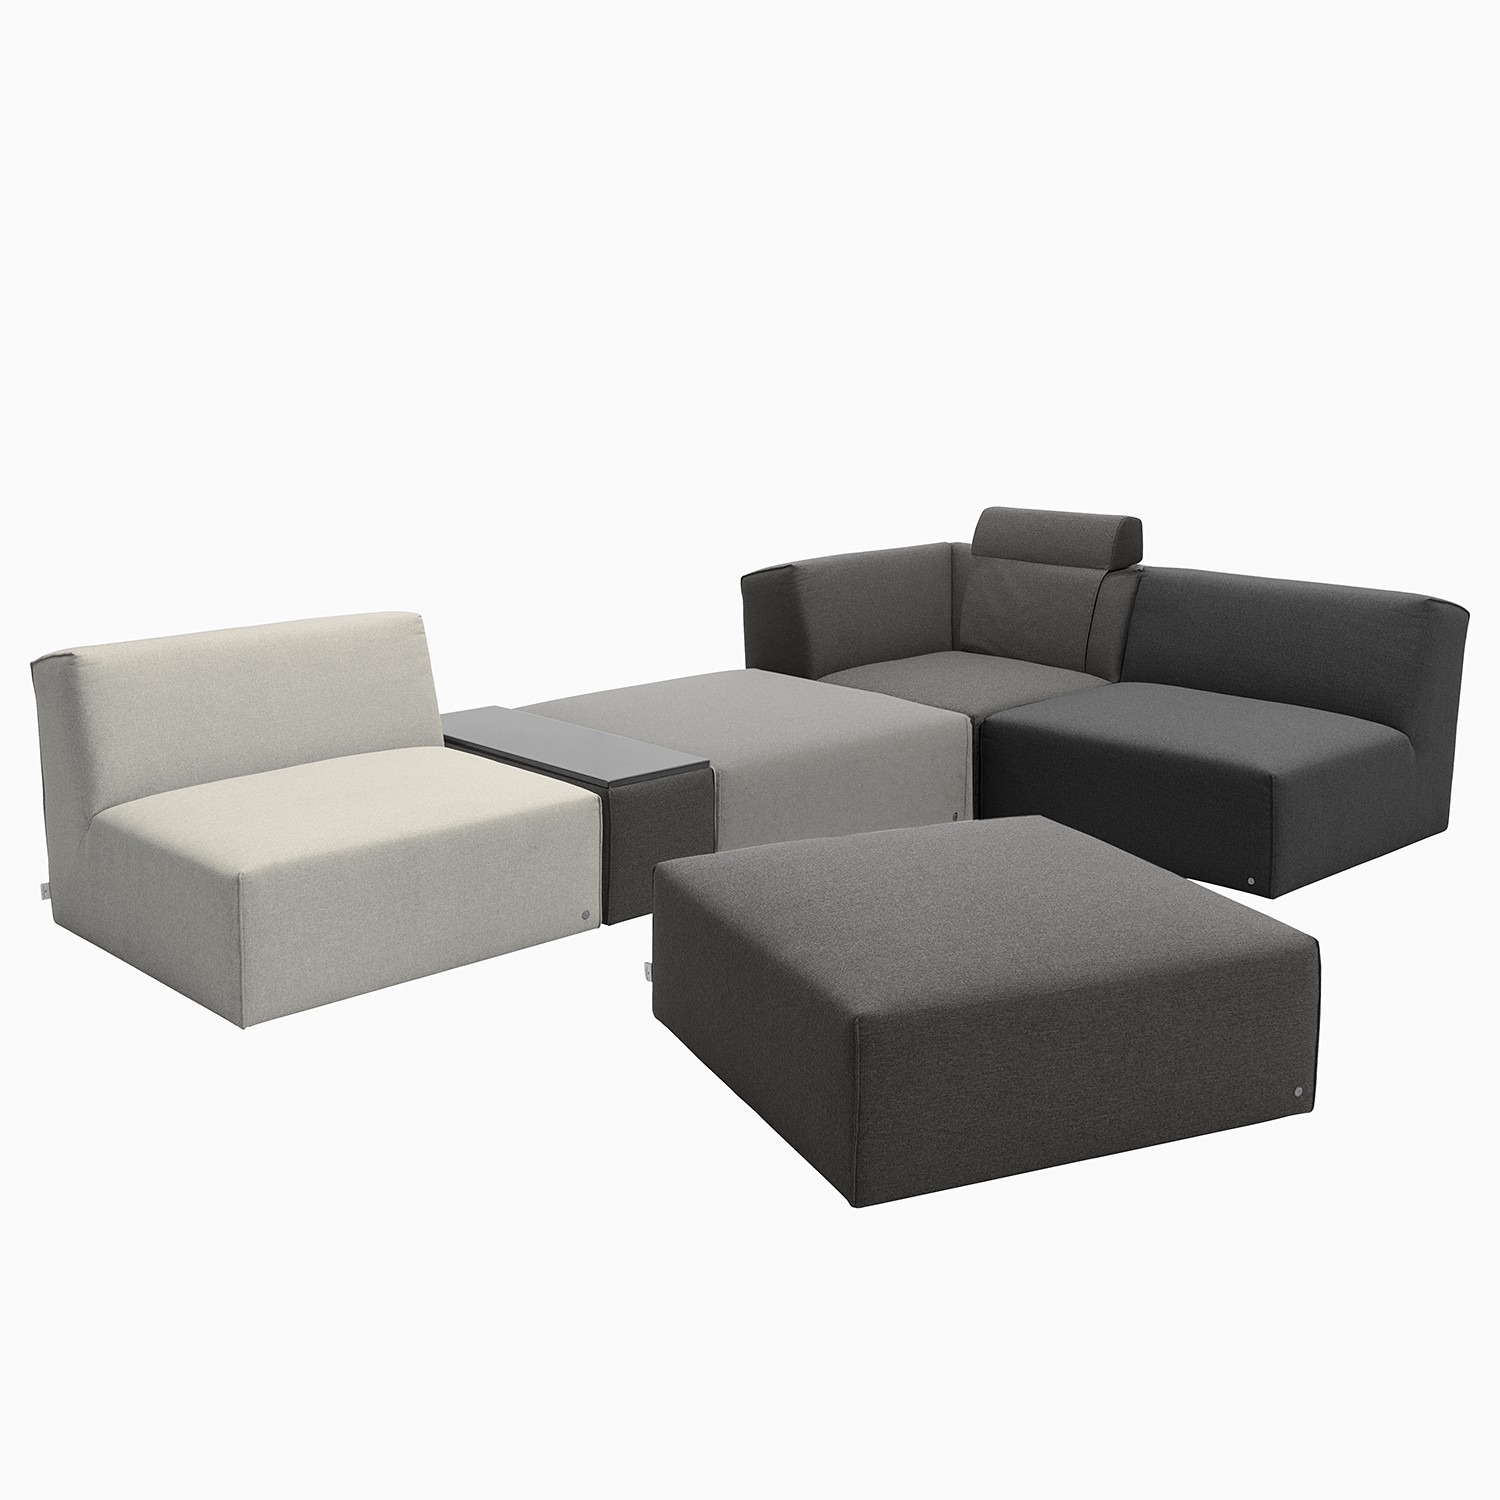 home24 Tom Tailor Ecksofa Elements V Grau 100% Polyester 322x88x193 cm (BxHxT) Modern